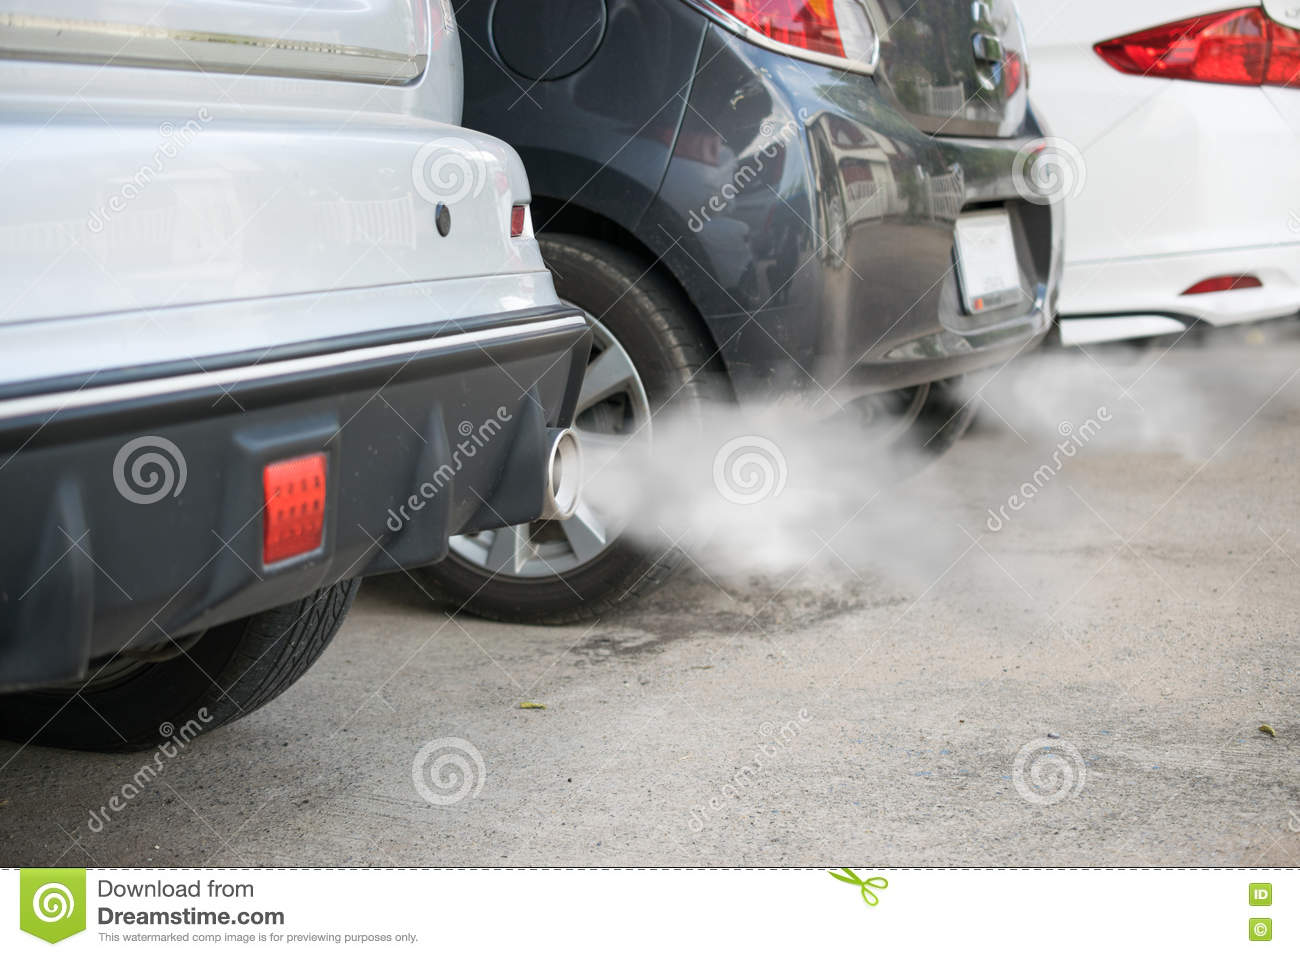 Exhaust Coming Out Of A Car ~ Combustion fumes coming out of car exhaust pipe stock